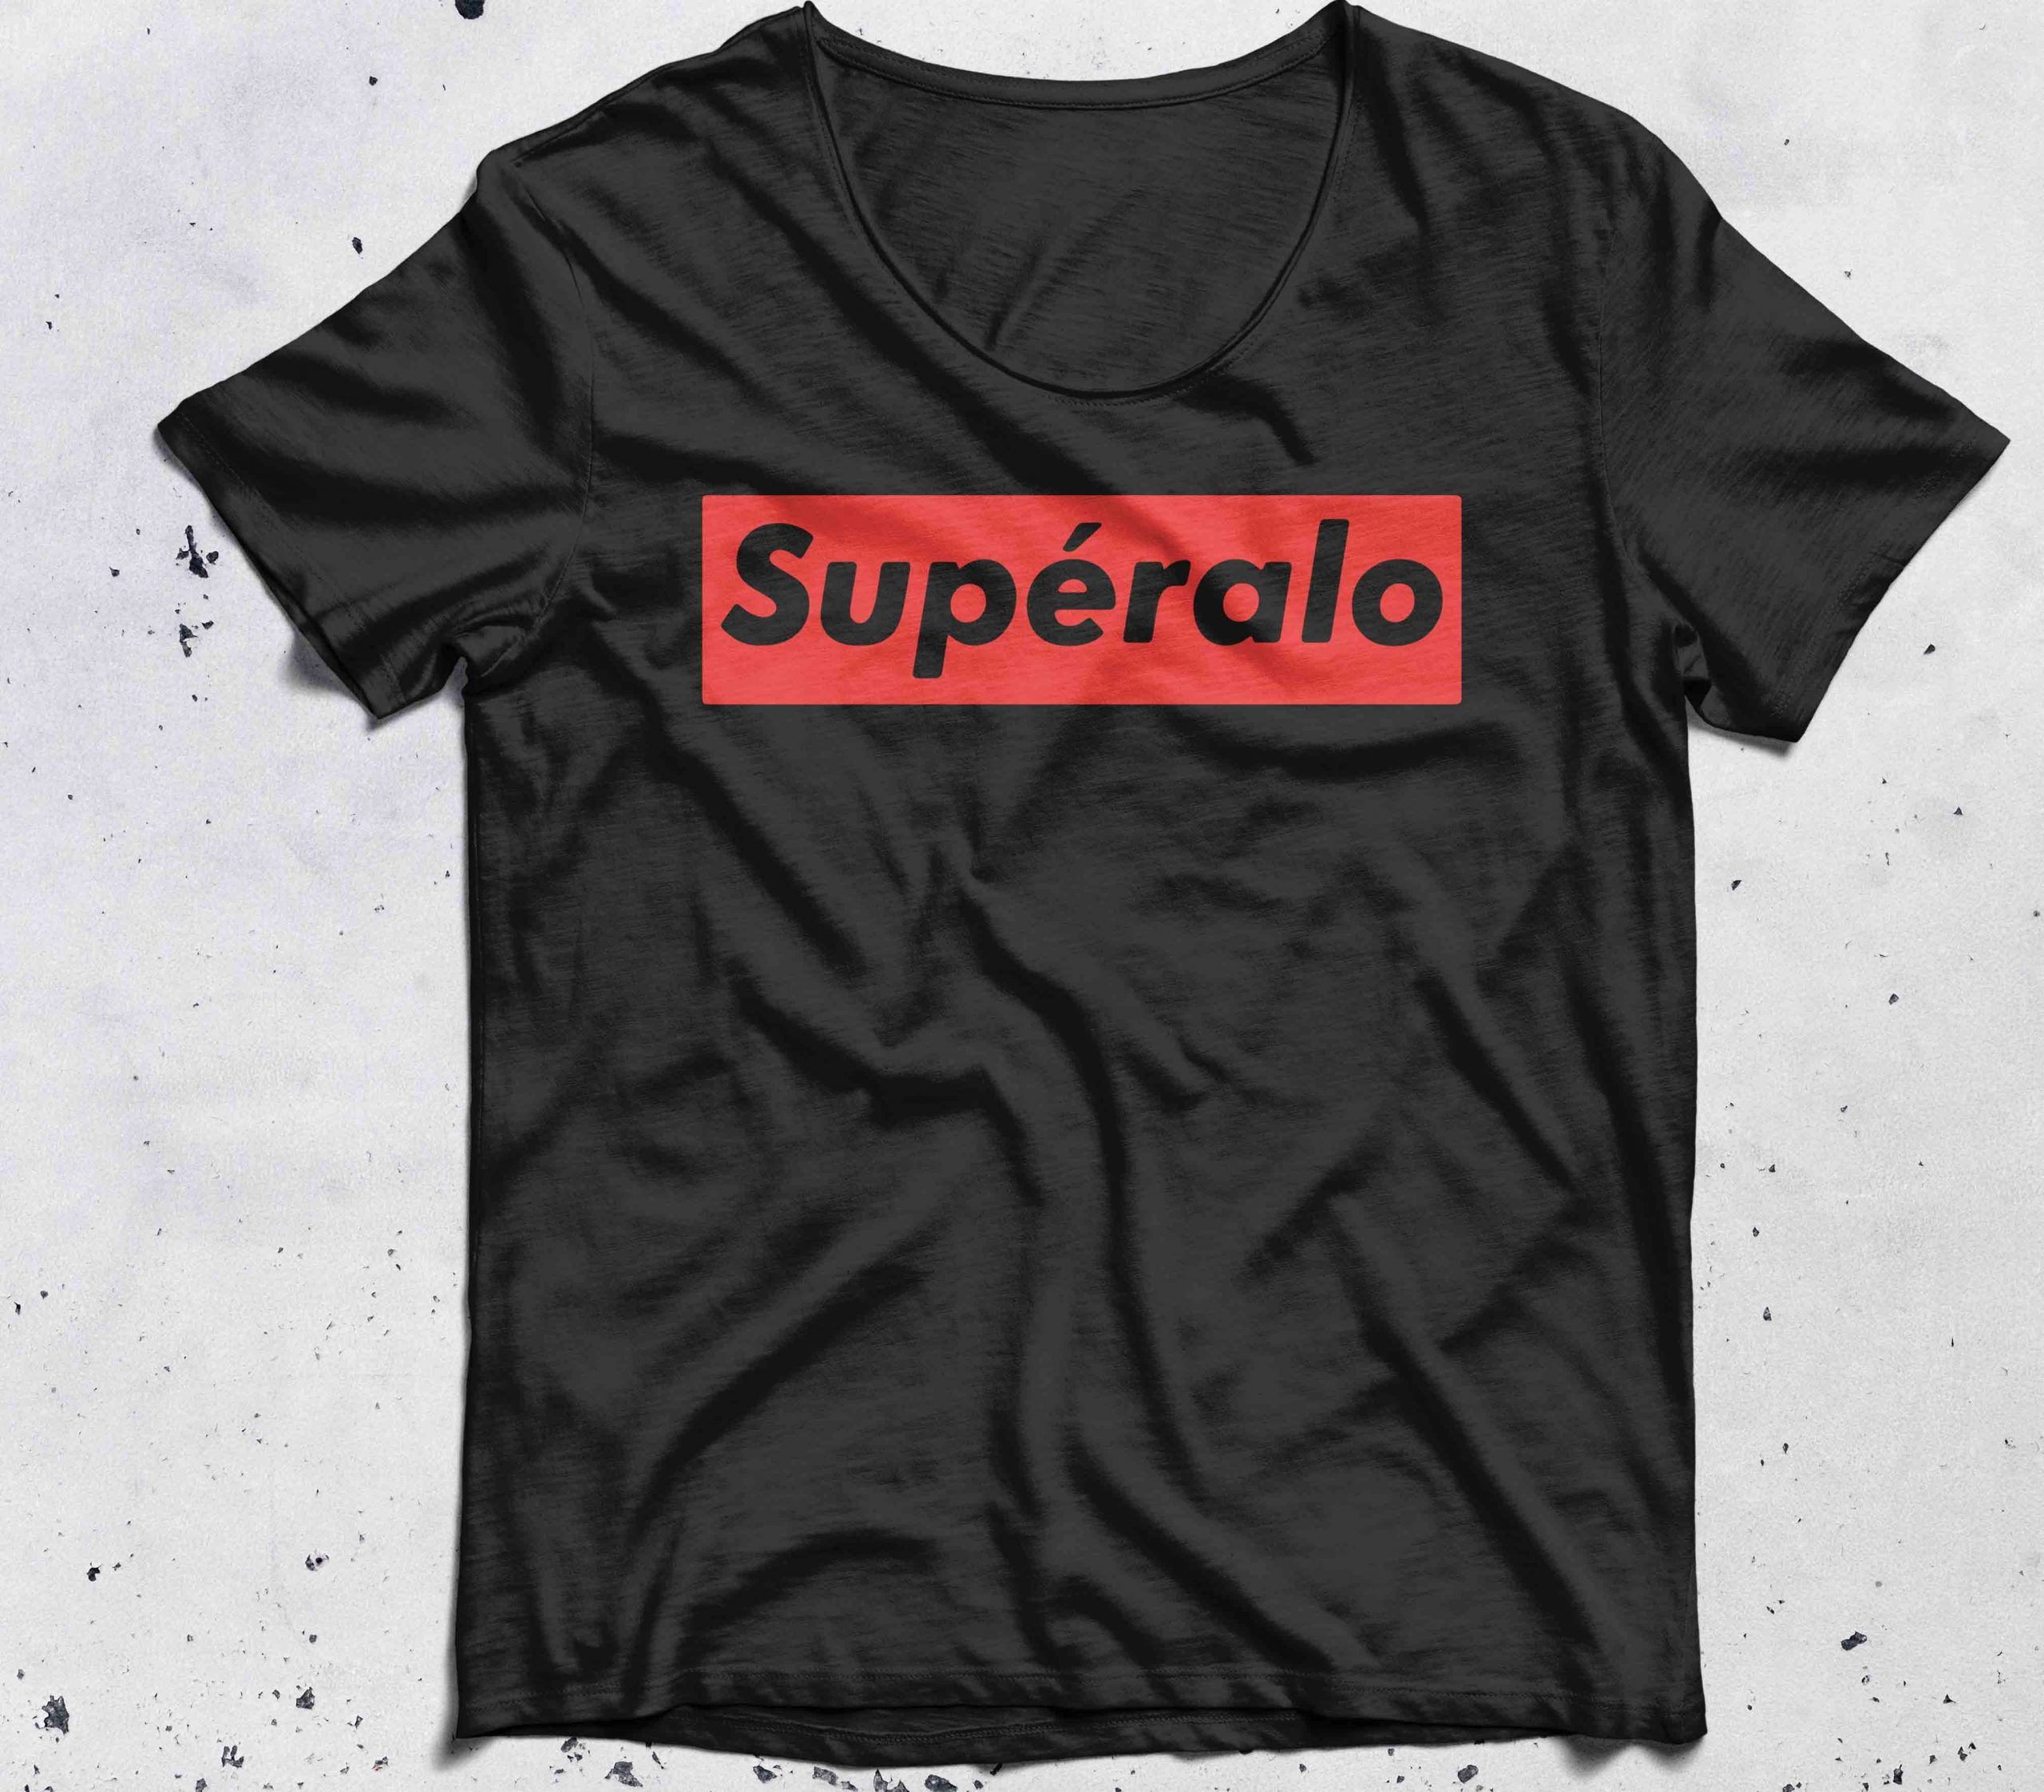 Official Superalo style shirt